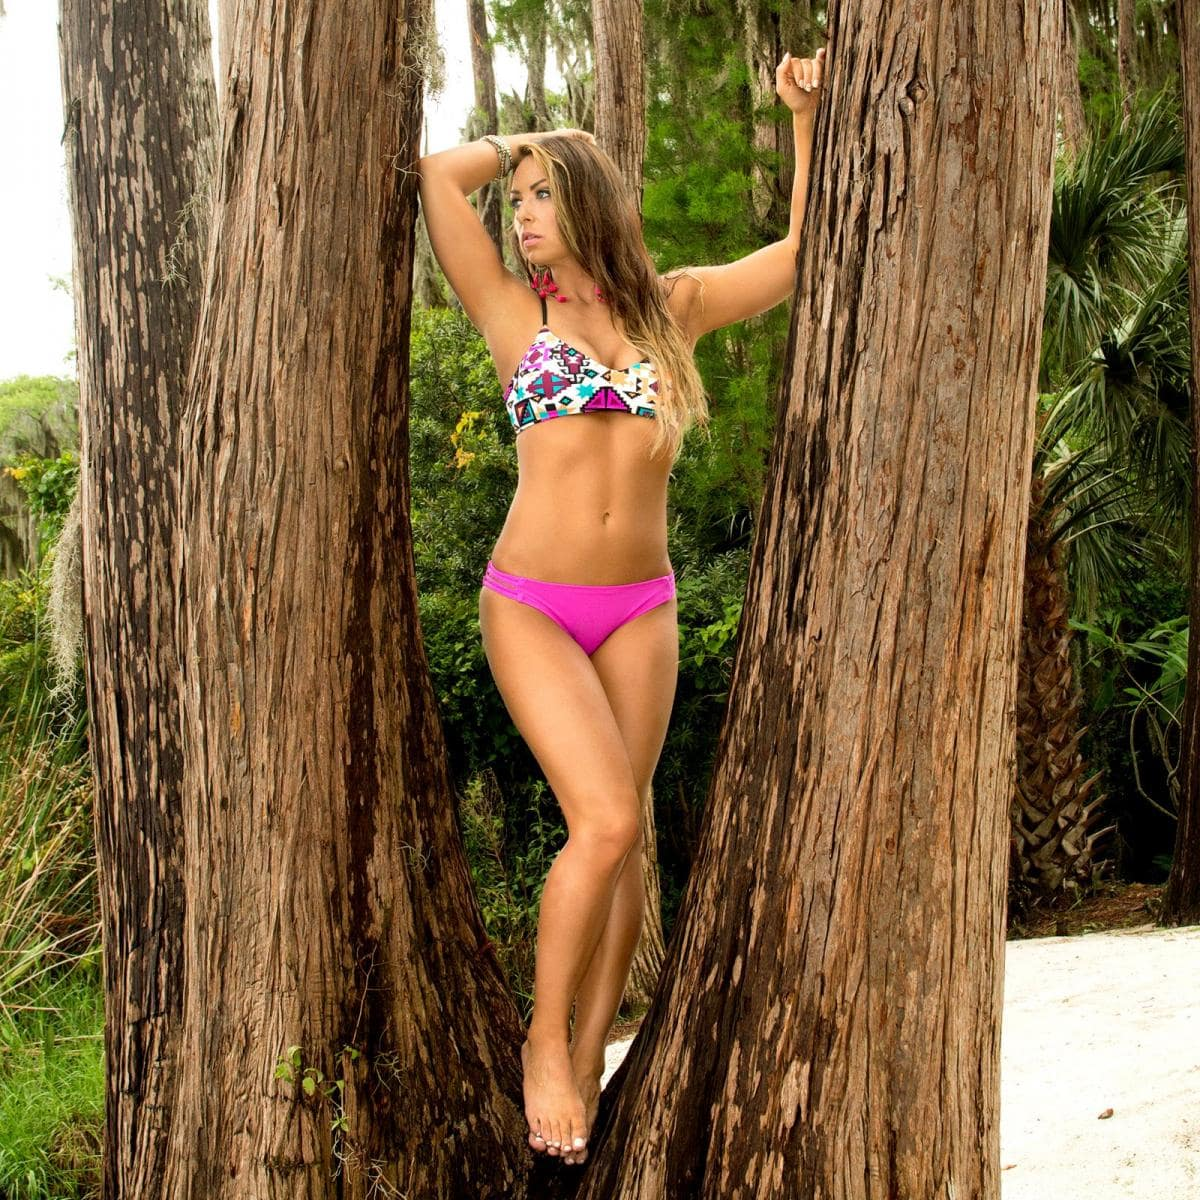 Tenille Dashwood in jungle